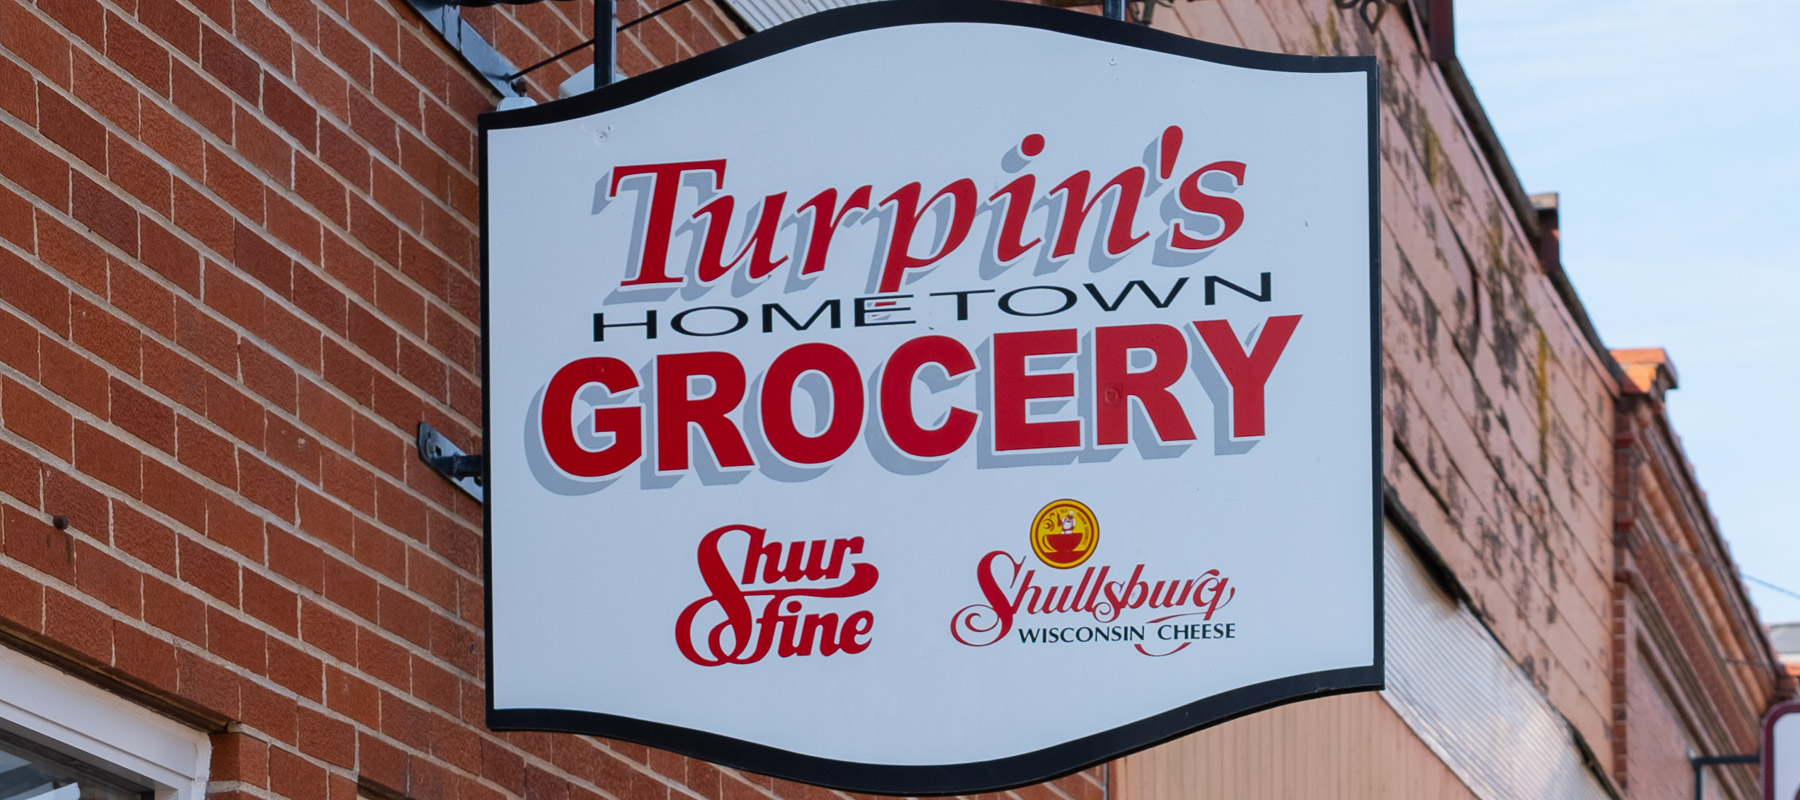 Turpin's Hometown Grocery sign